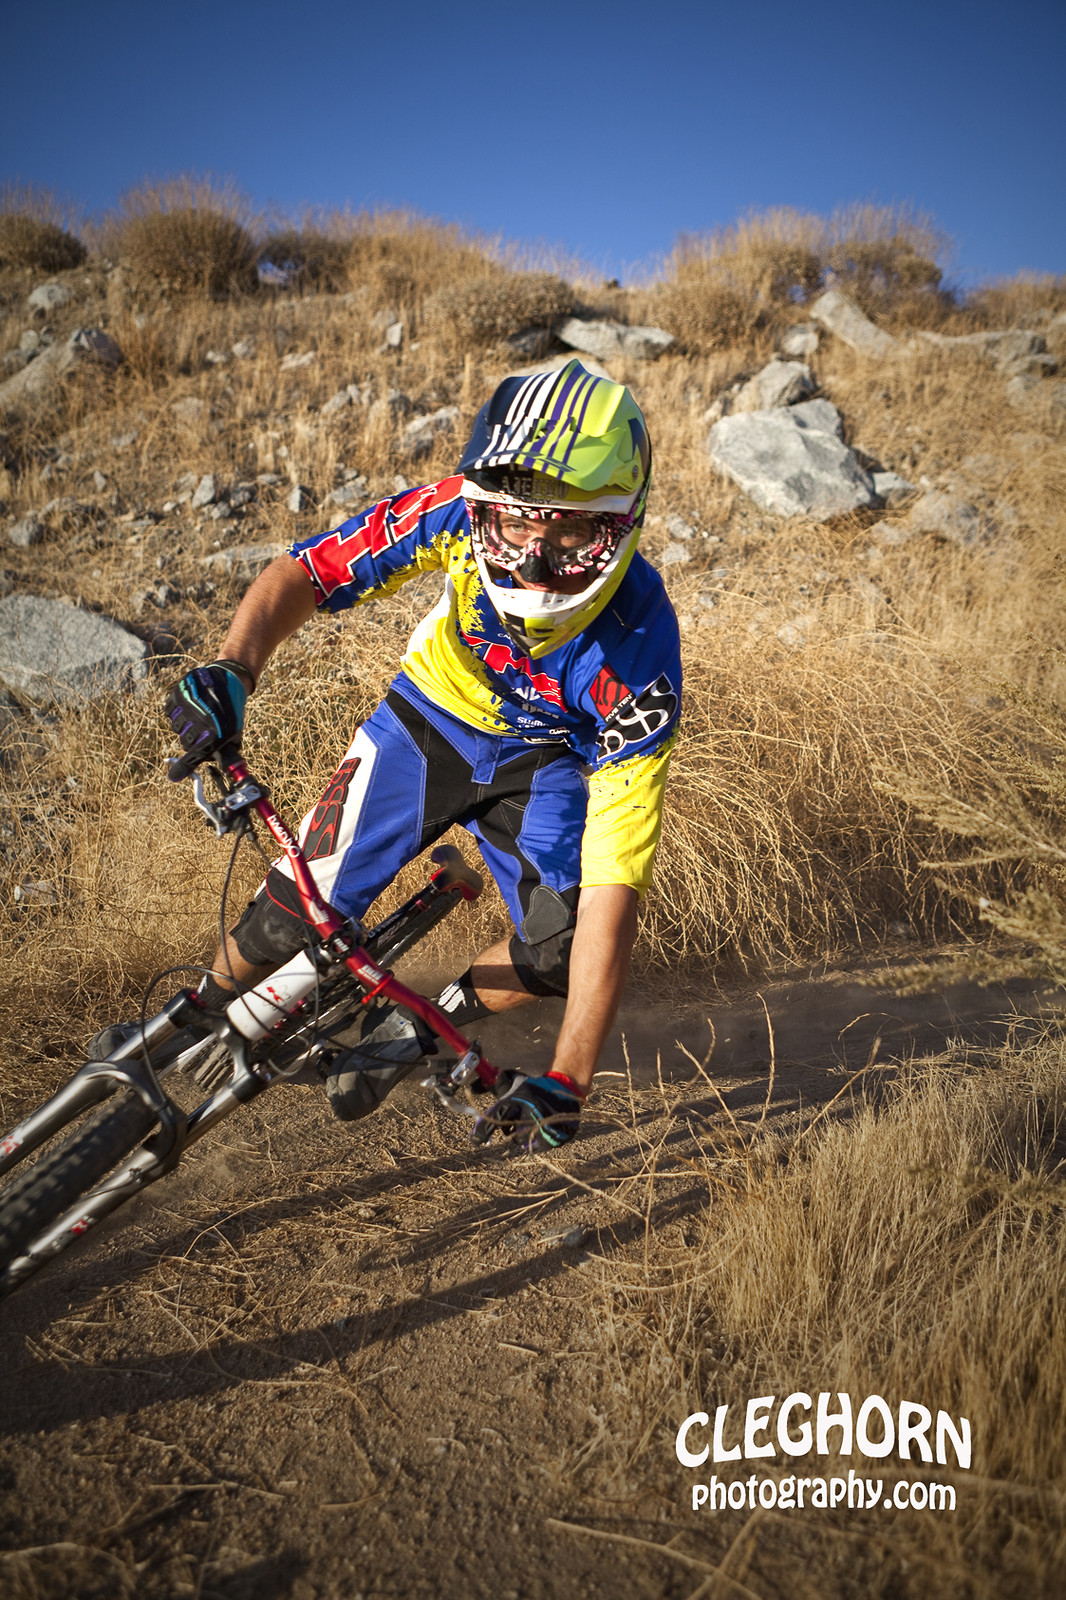 Kevin Aiello - Cleghorn Photography - Mountain Biking Pictures - Vital MTB